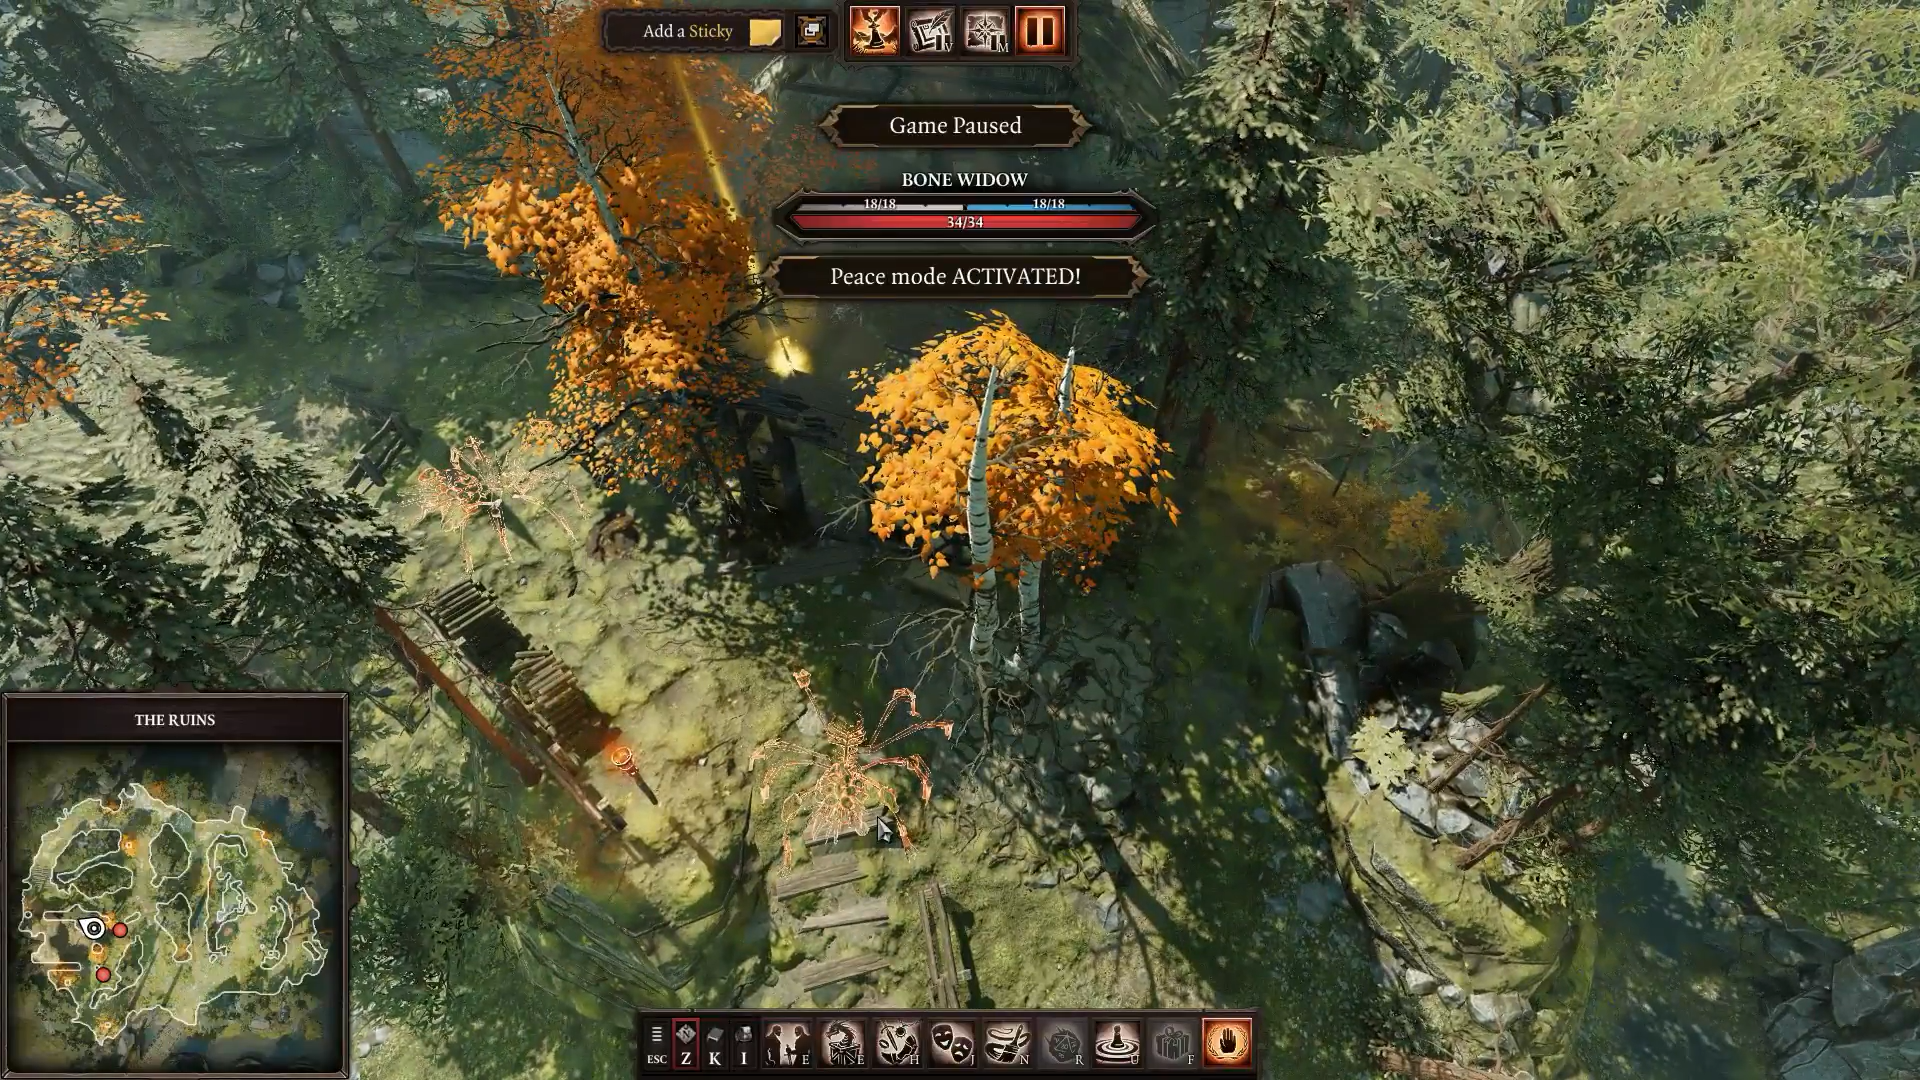 divinity-original-sin-2-video-screencap_hidden-spiders-02